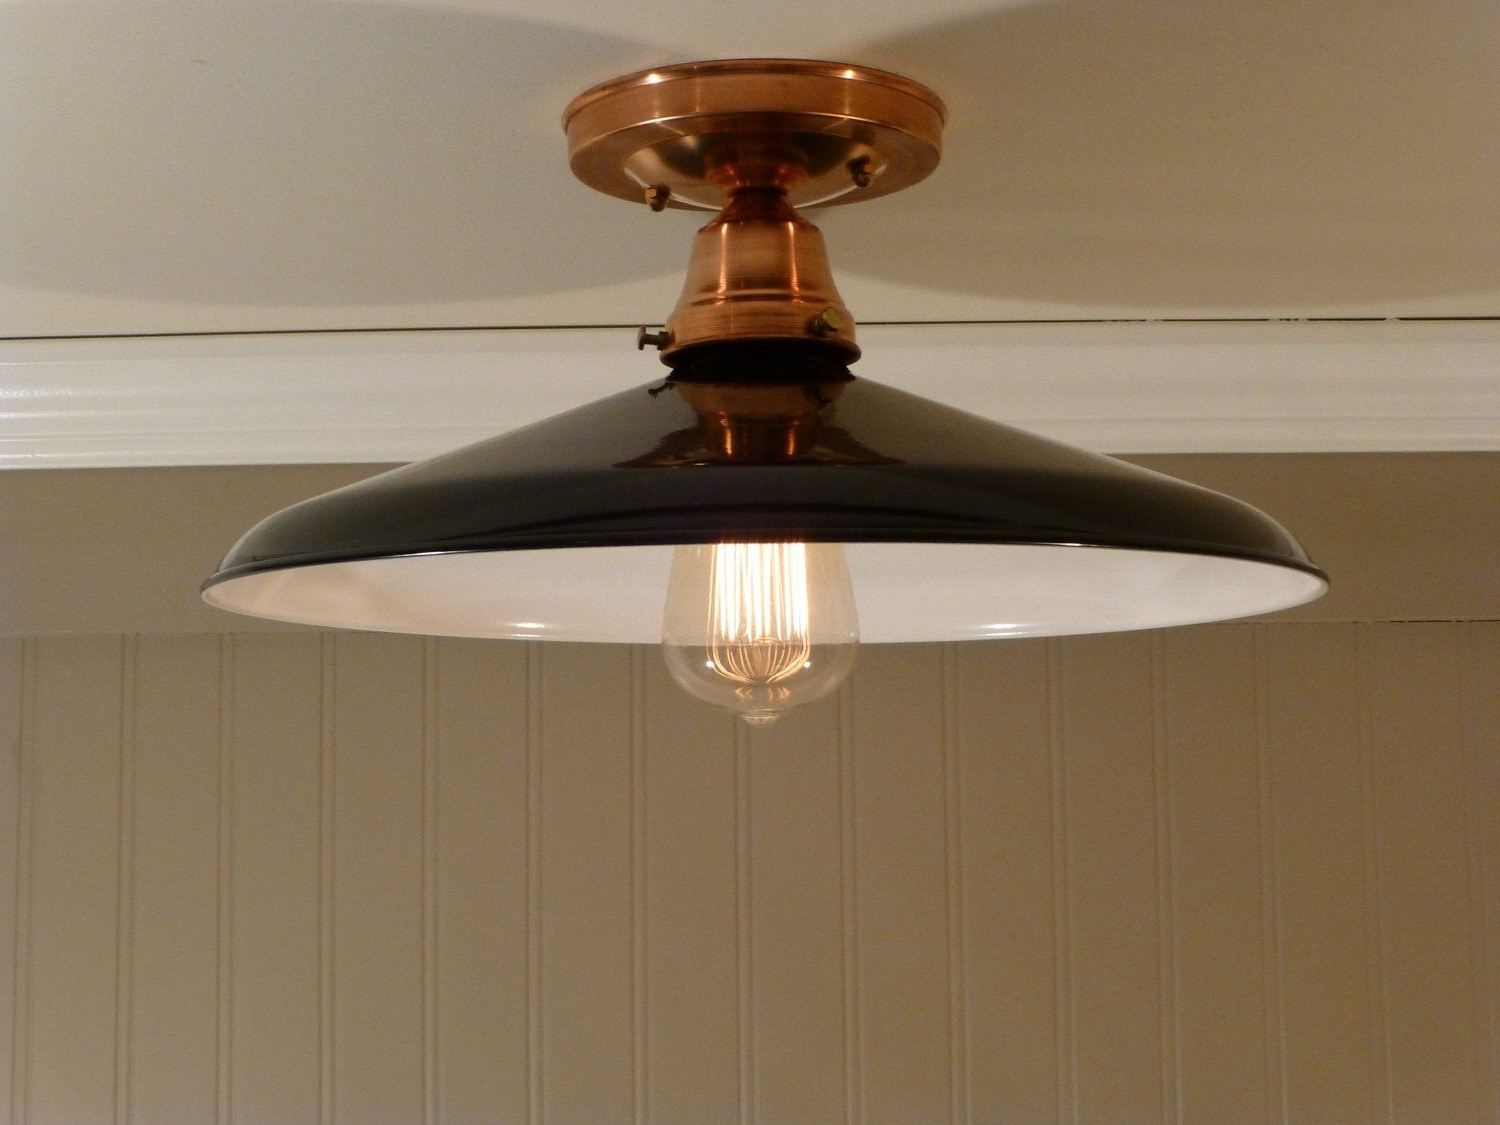 Dining Room Light – Low Ceiling For The Home Pinterest Best Intended For Most Recent Low Ceiling Chandeliers (View 15 of 20)